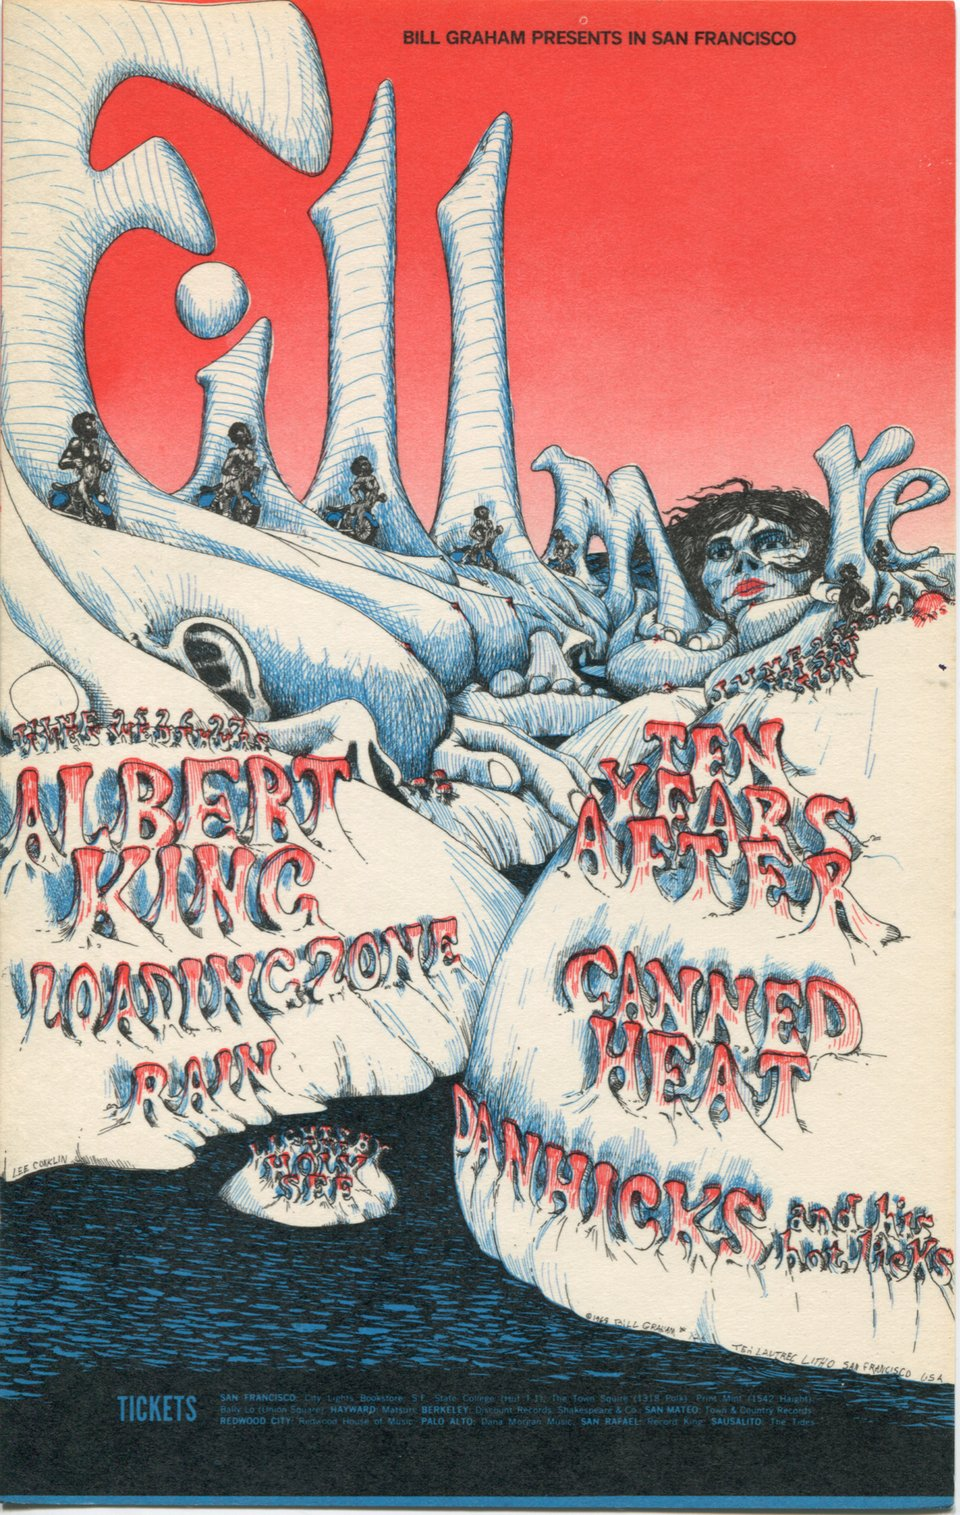 Albert King, Canned Heat, Dan Hicks and His Hot Licks, Loading Zone, Rain, Ten Years After – Vintage poster – Lee Conklin – 1967